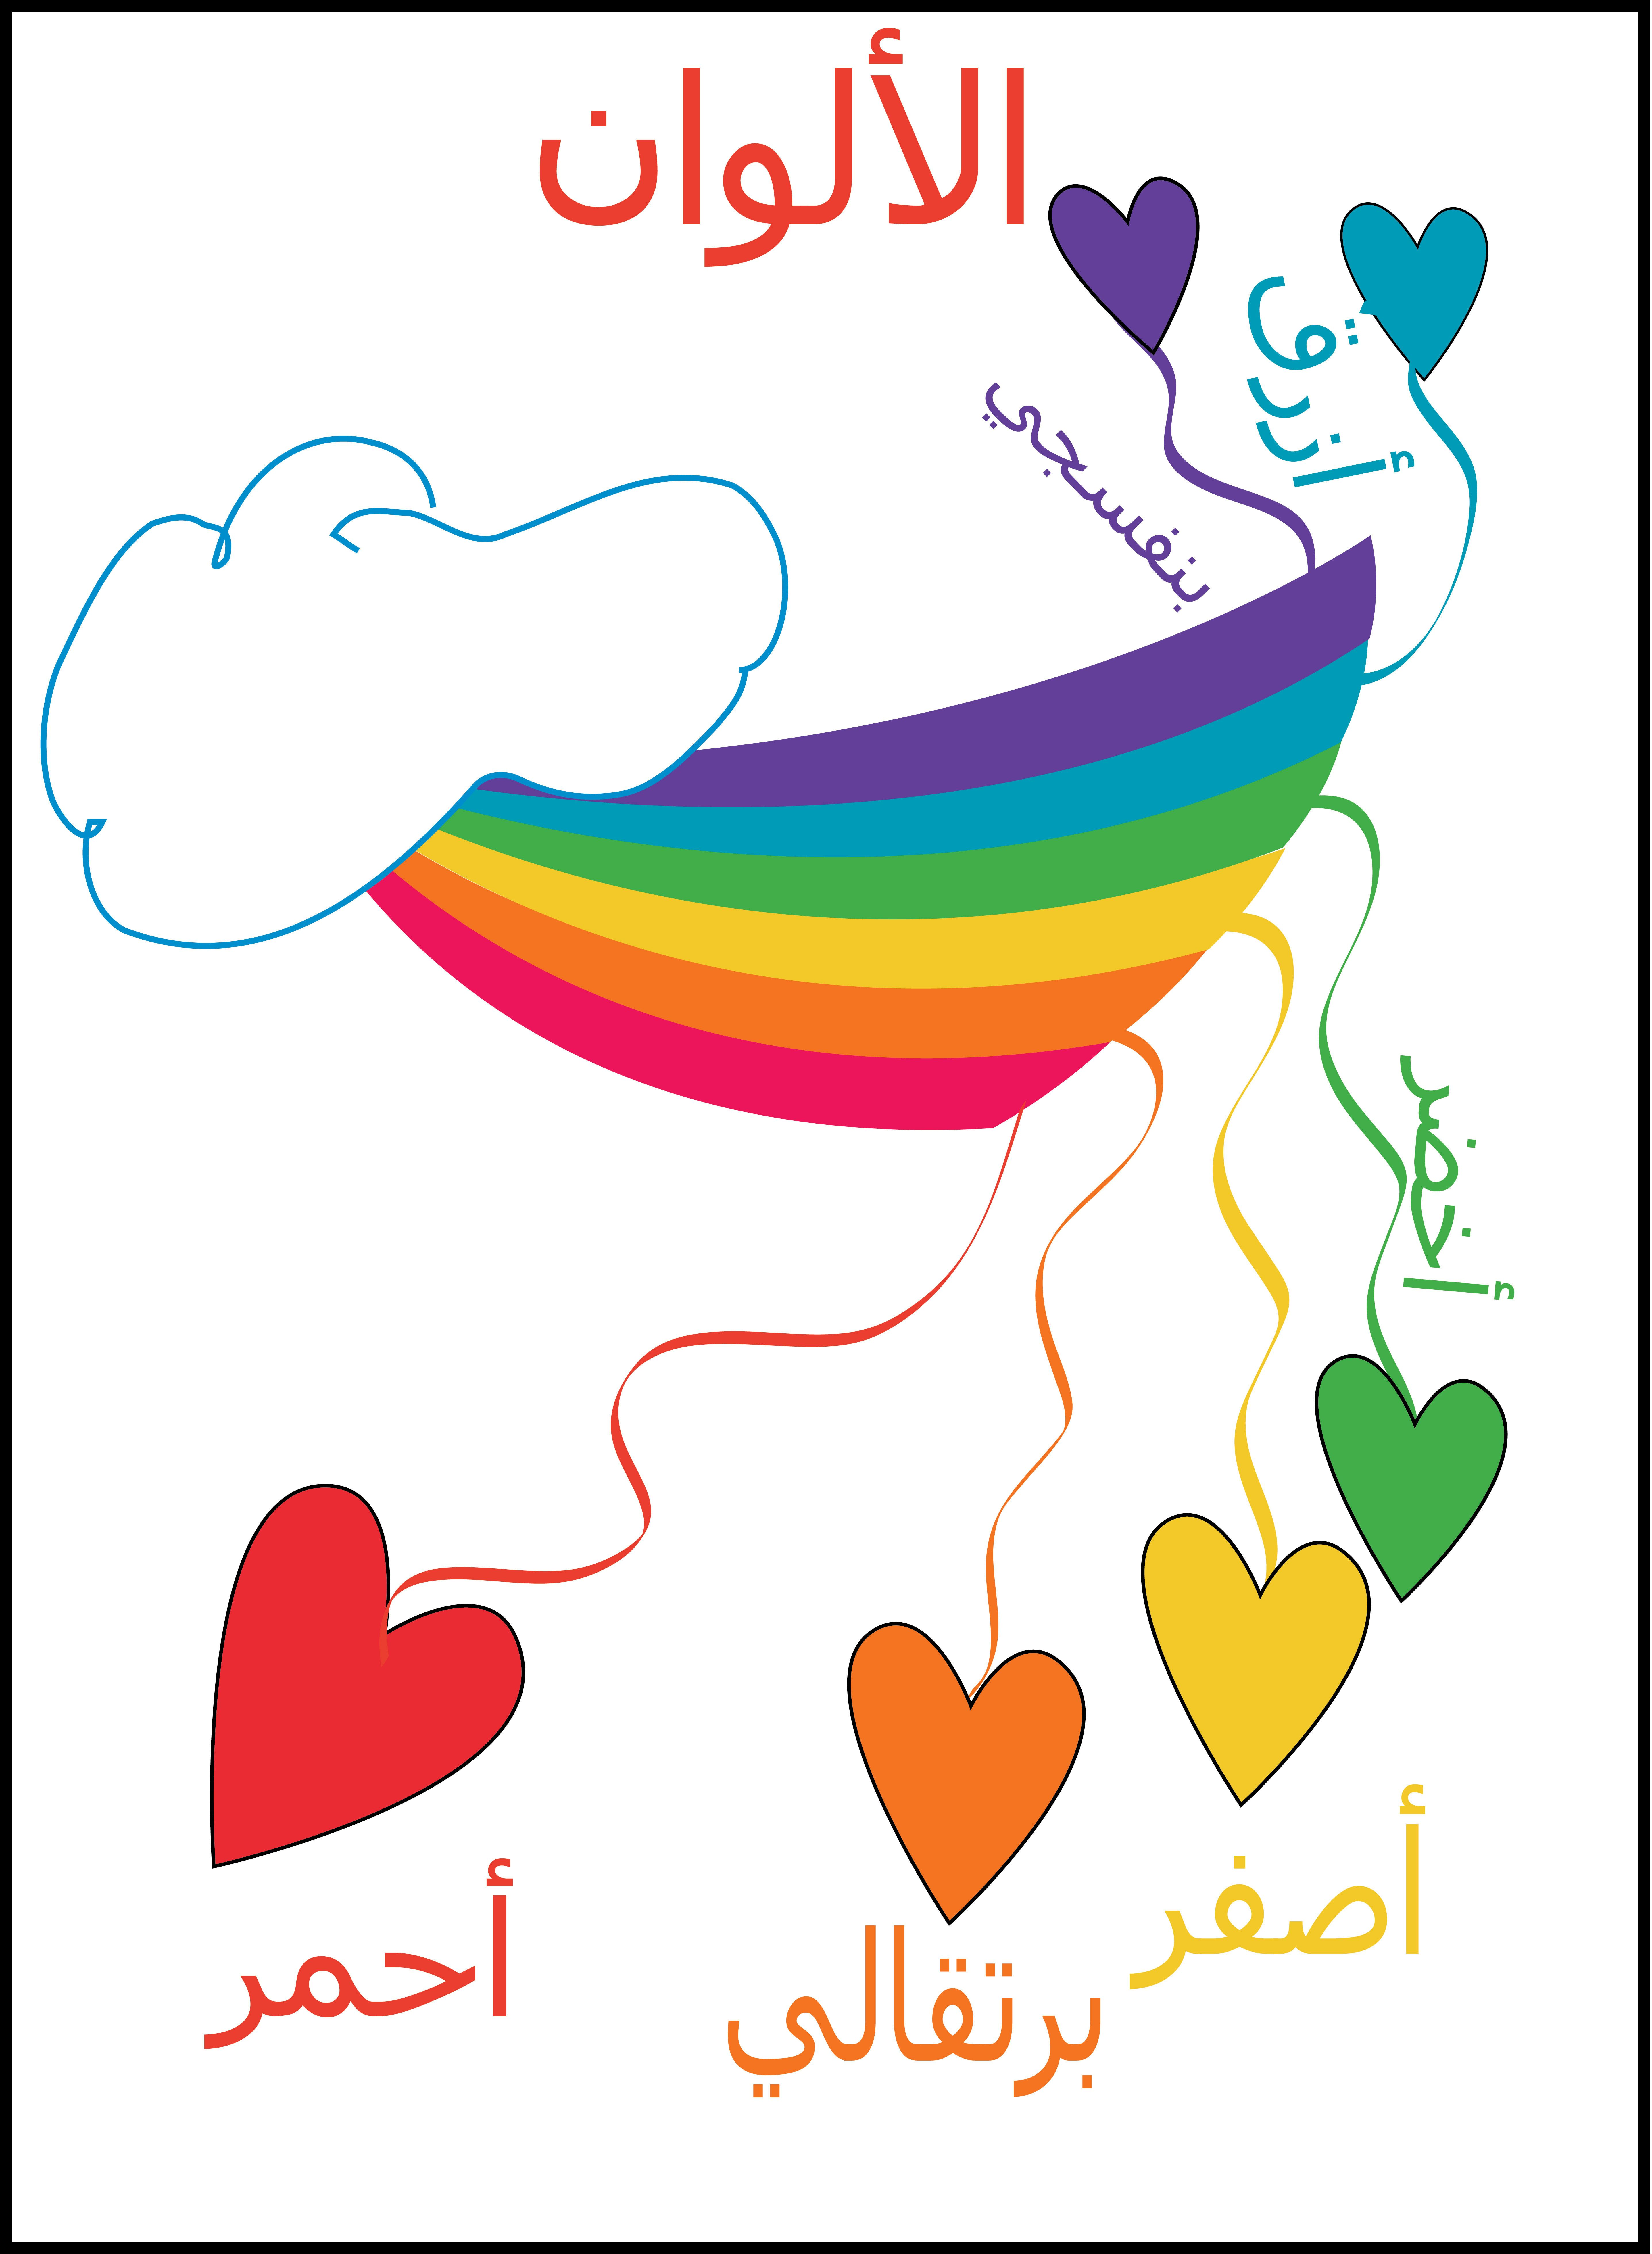 This Is A Poster I Made About Colors In Arabic